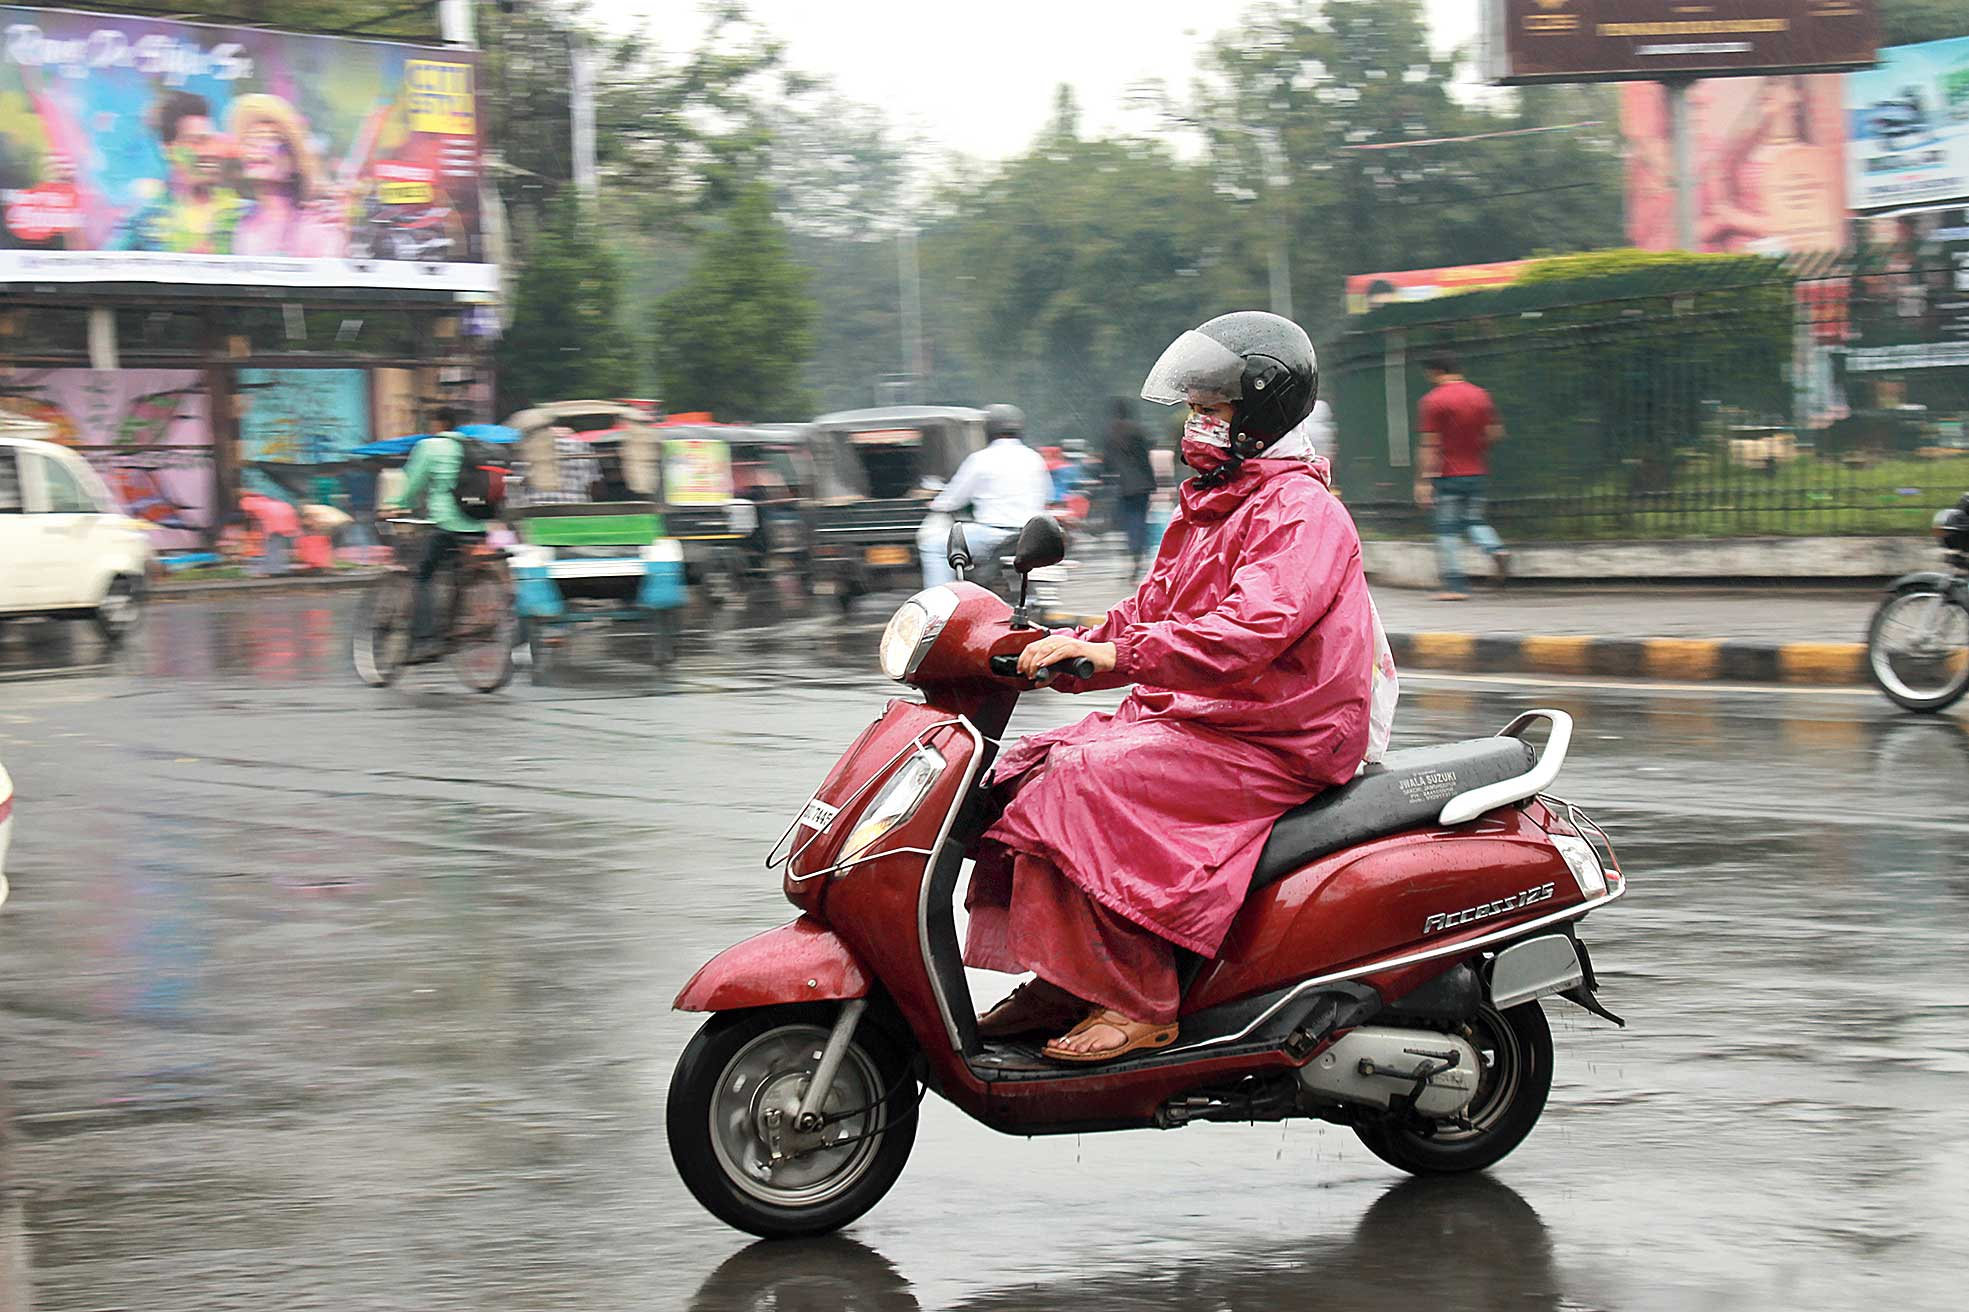 A woman rides a scooter in the rain in Sakchi, Jamshedpur, on Wednesday.